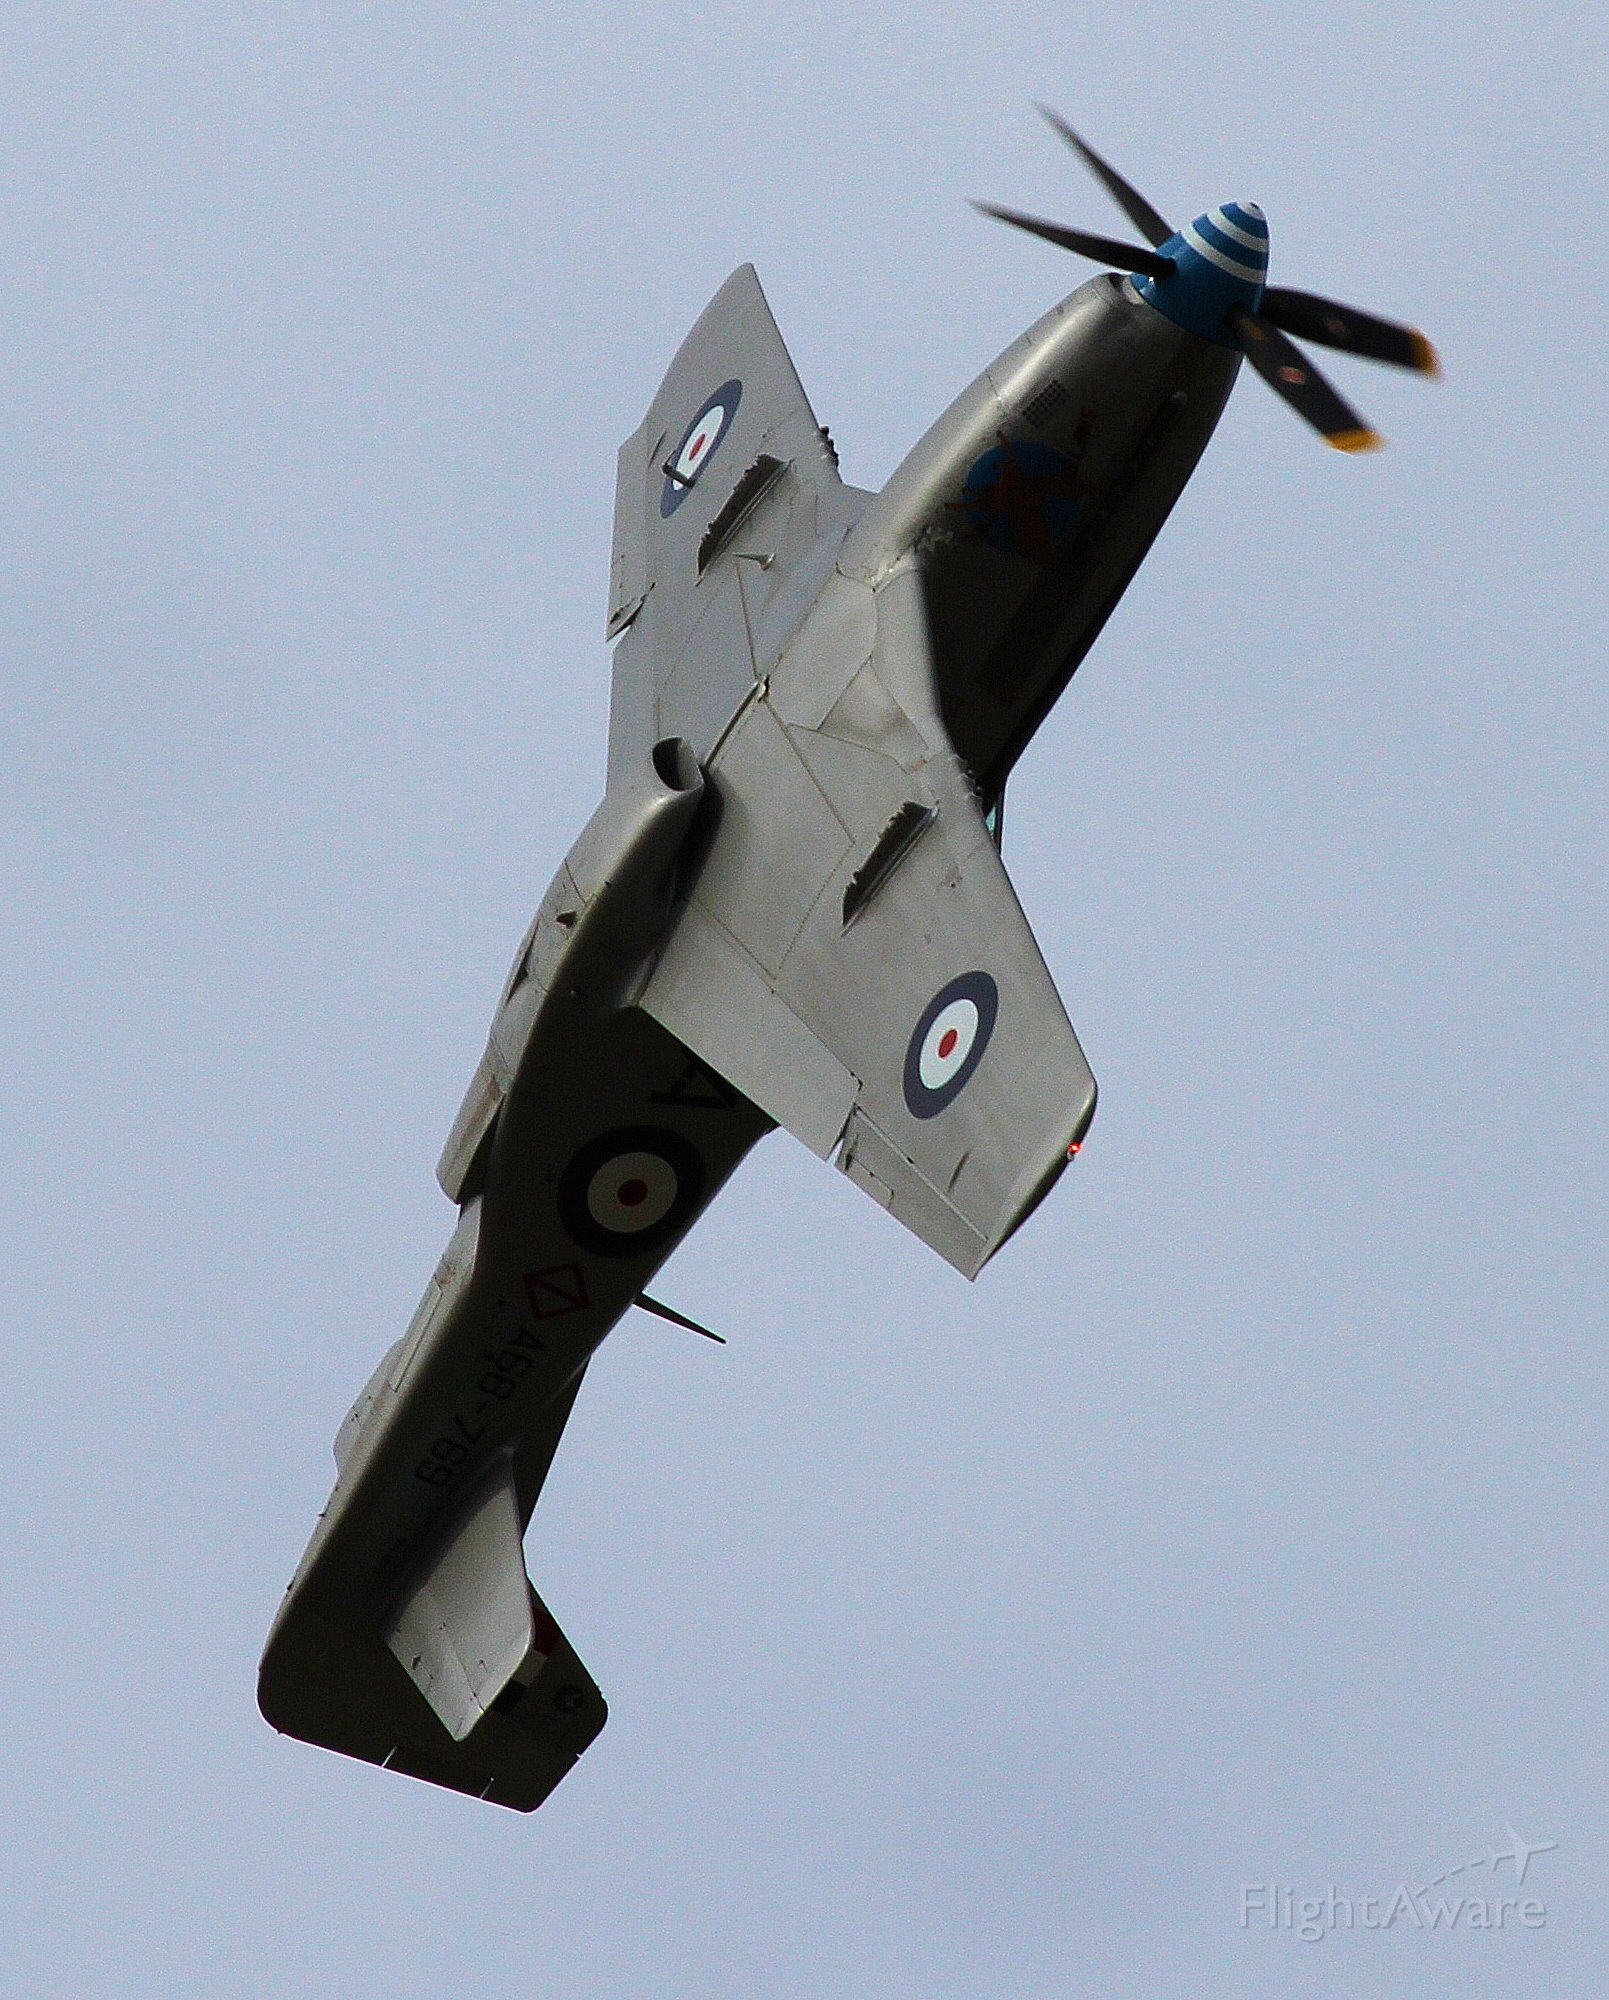 VH-MFT — - Matt Hall displaying the Mustang Fighter Trust aircraft at the Cessnock Air Show on 21 9 2018